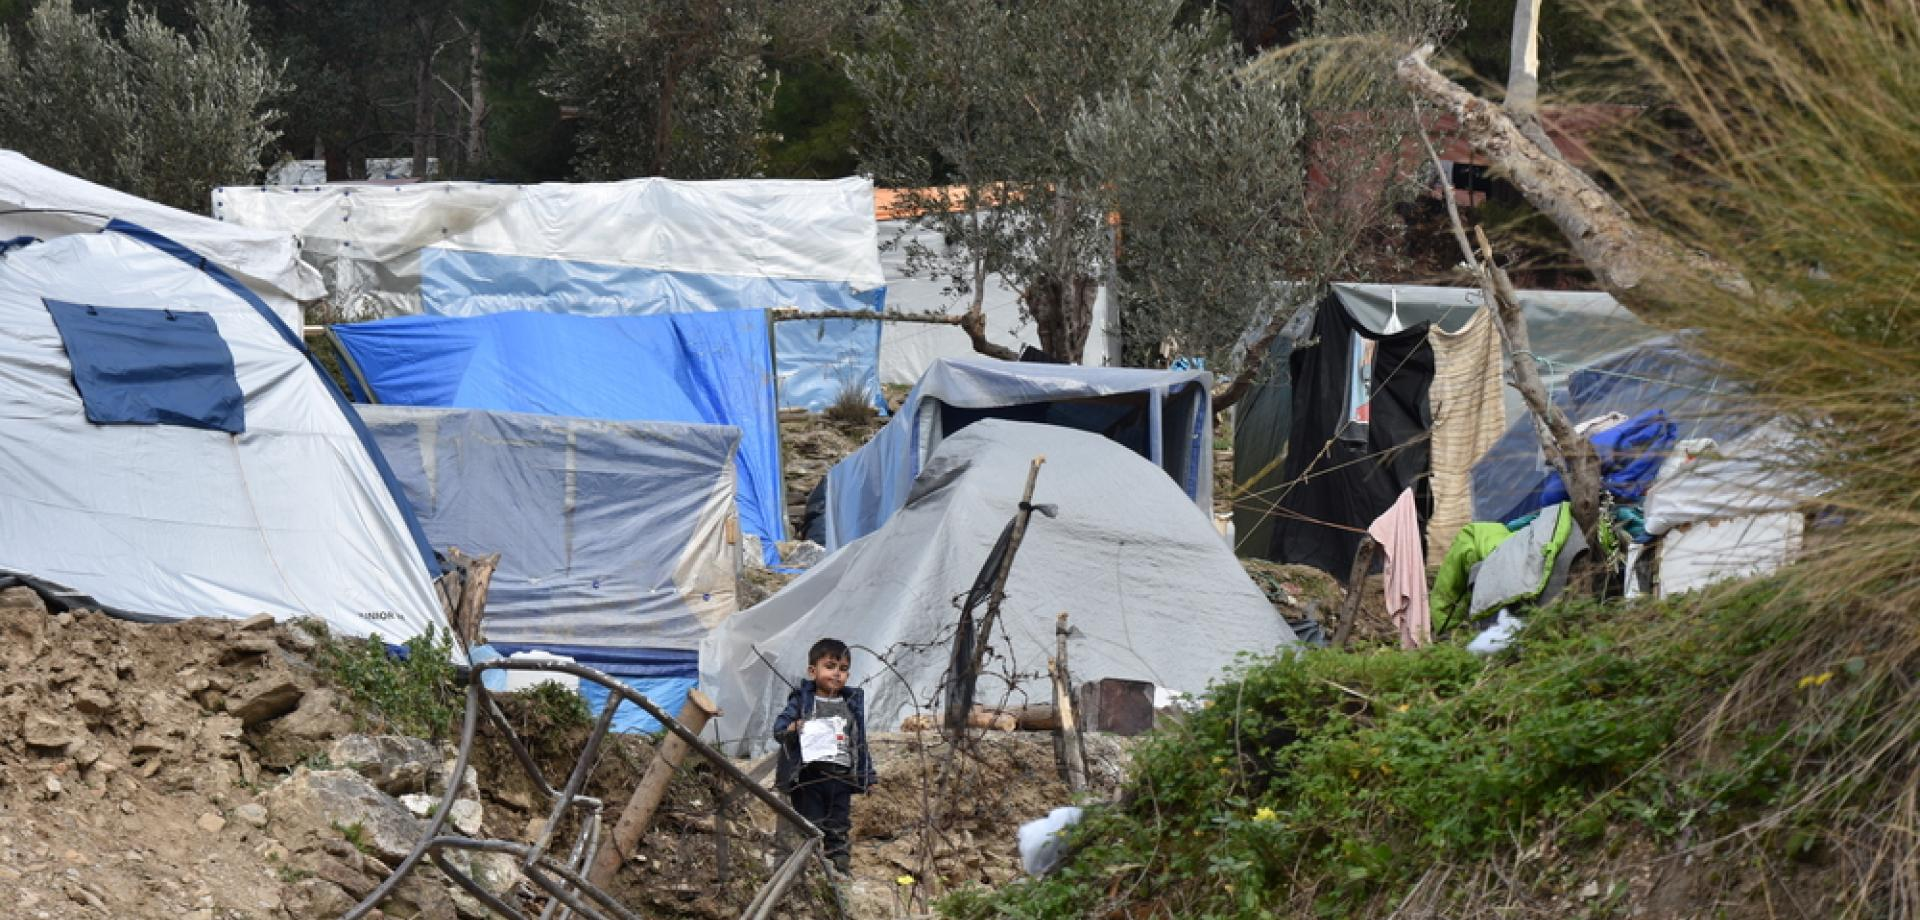 Vathy refugee camp on Samos was built for 650 people but currently hosts about 8,000